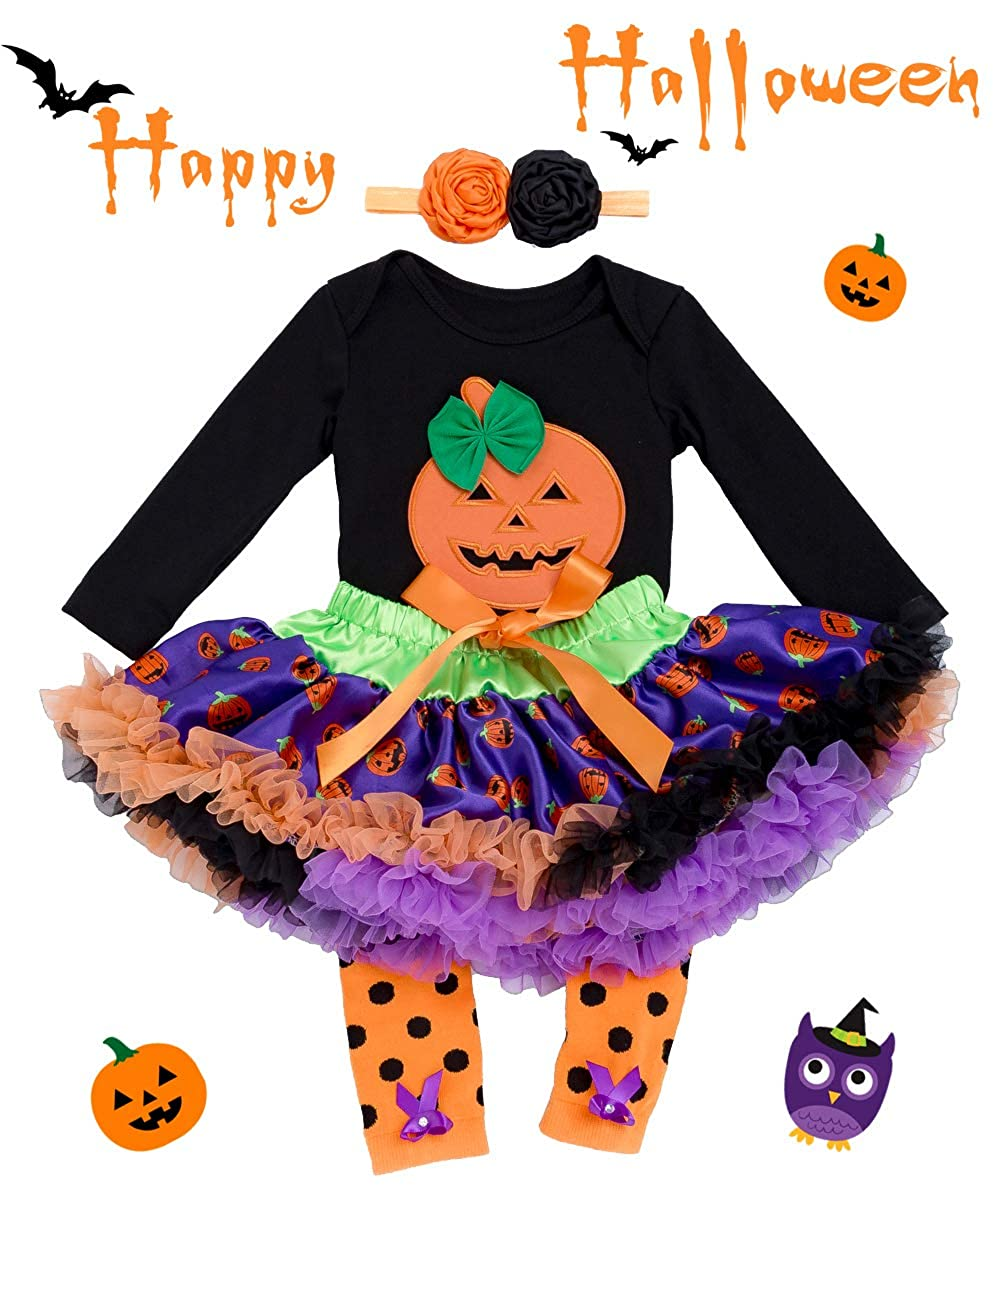 Halloween Outfits for Baby Girls - 4PCS Pumpkin Costume Romper Tutu Dress Gifts